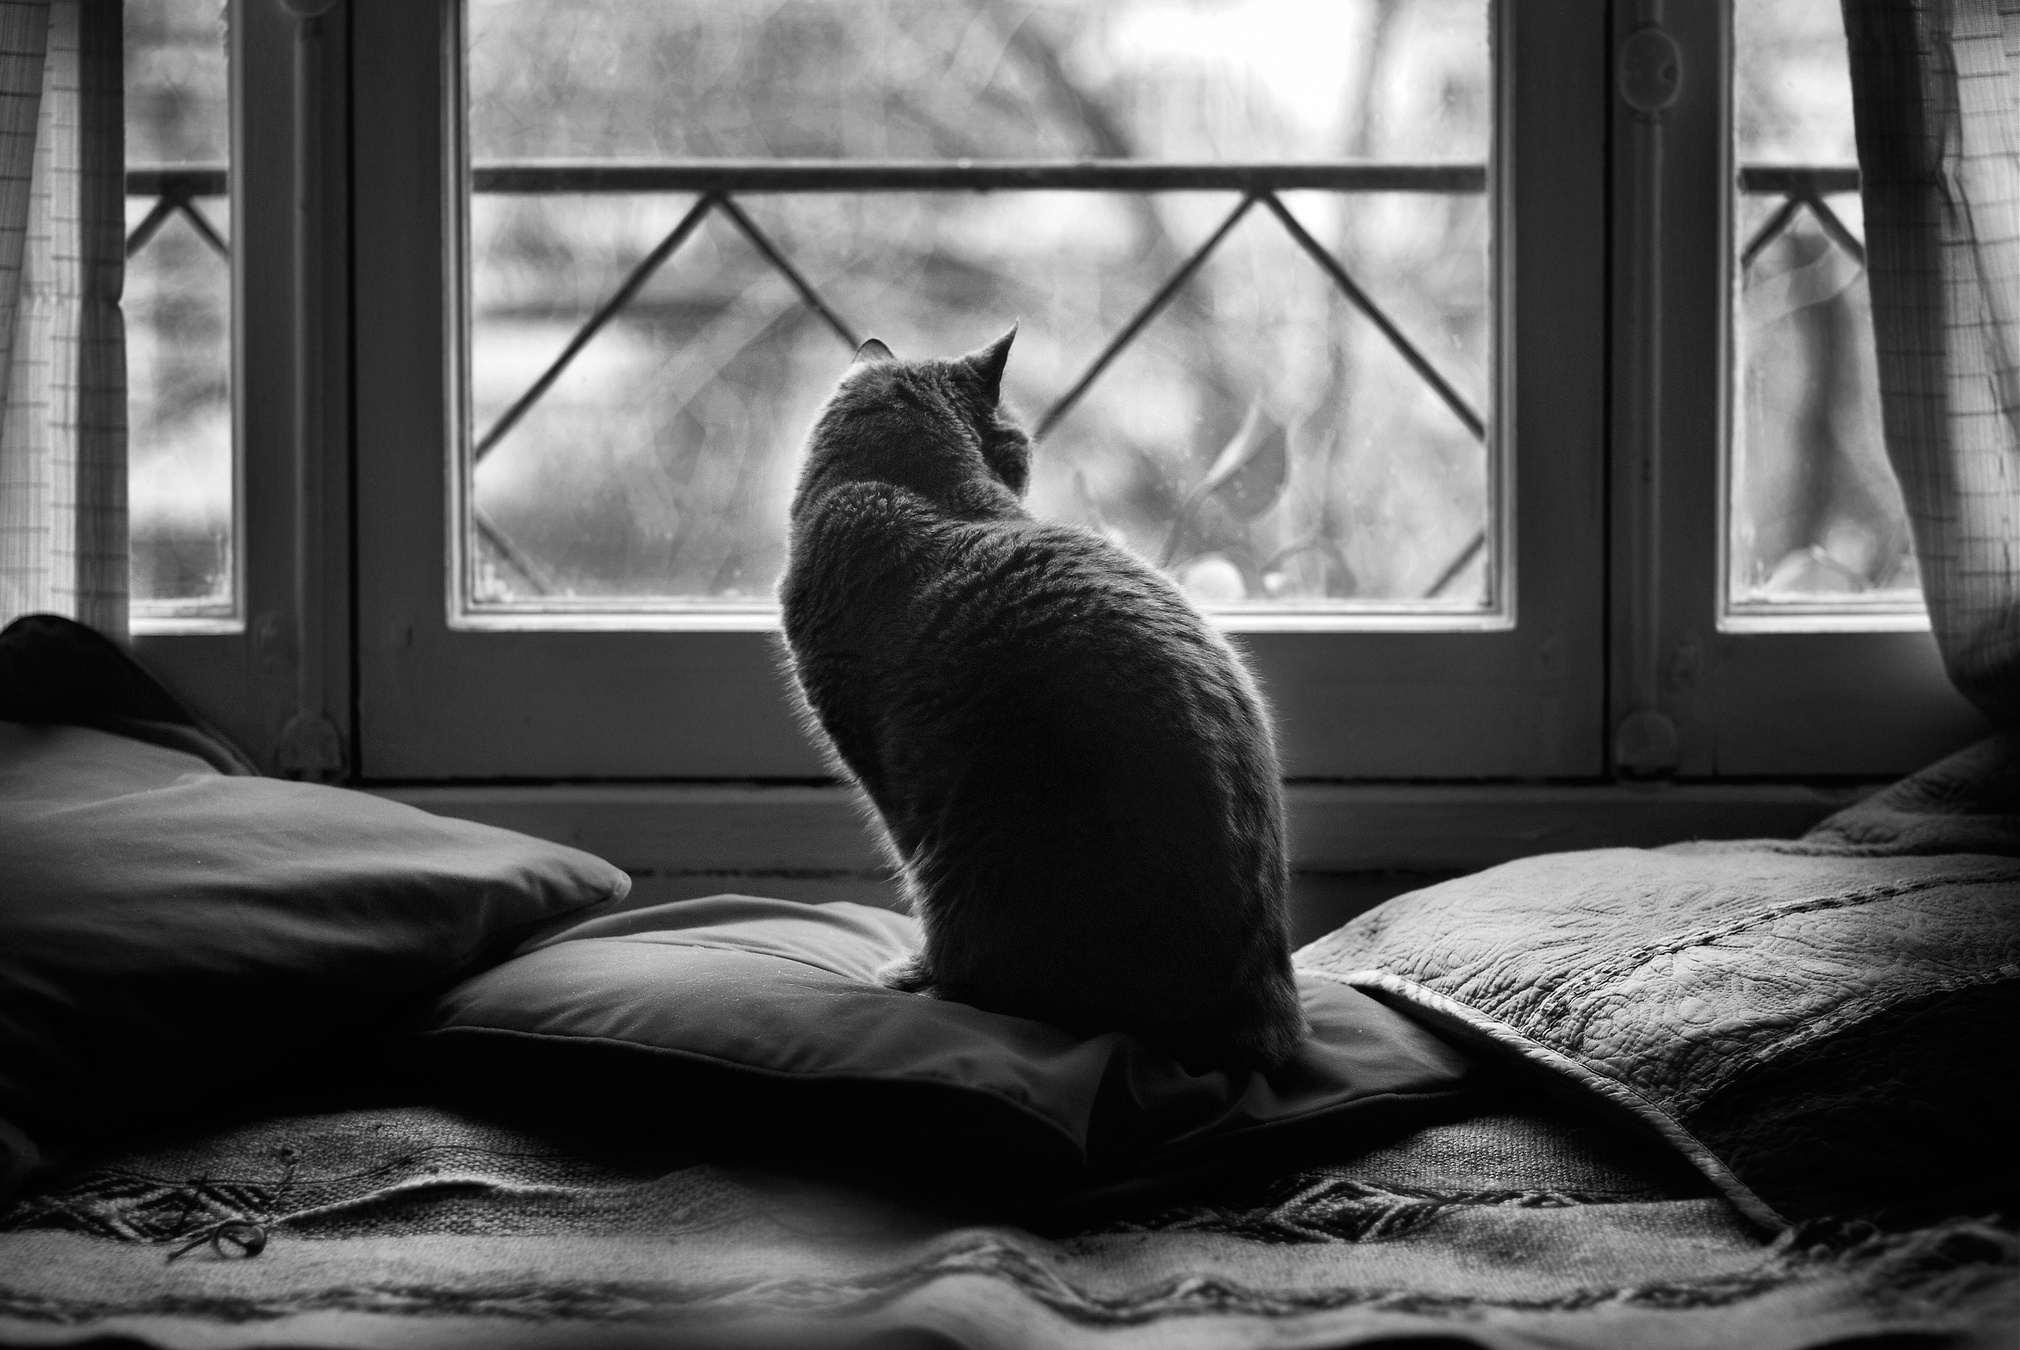 116451 download wallpaper Animals, Dark, Sit, Cat, Cushions, Pillows screensavers and pictures for free